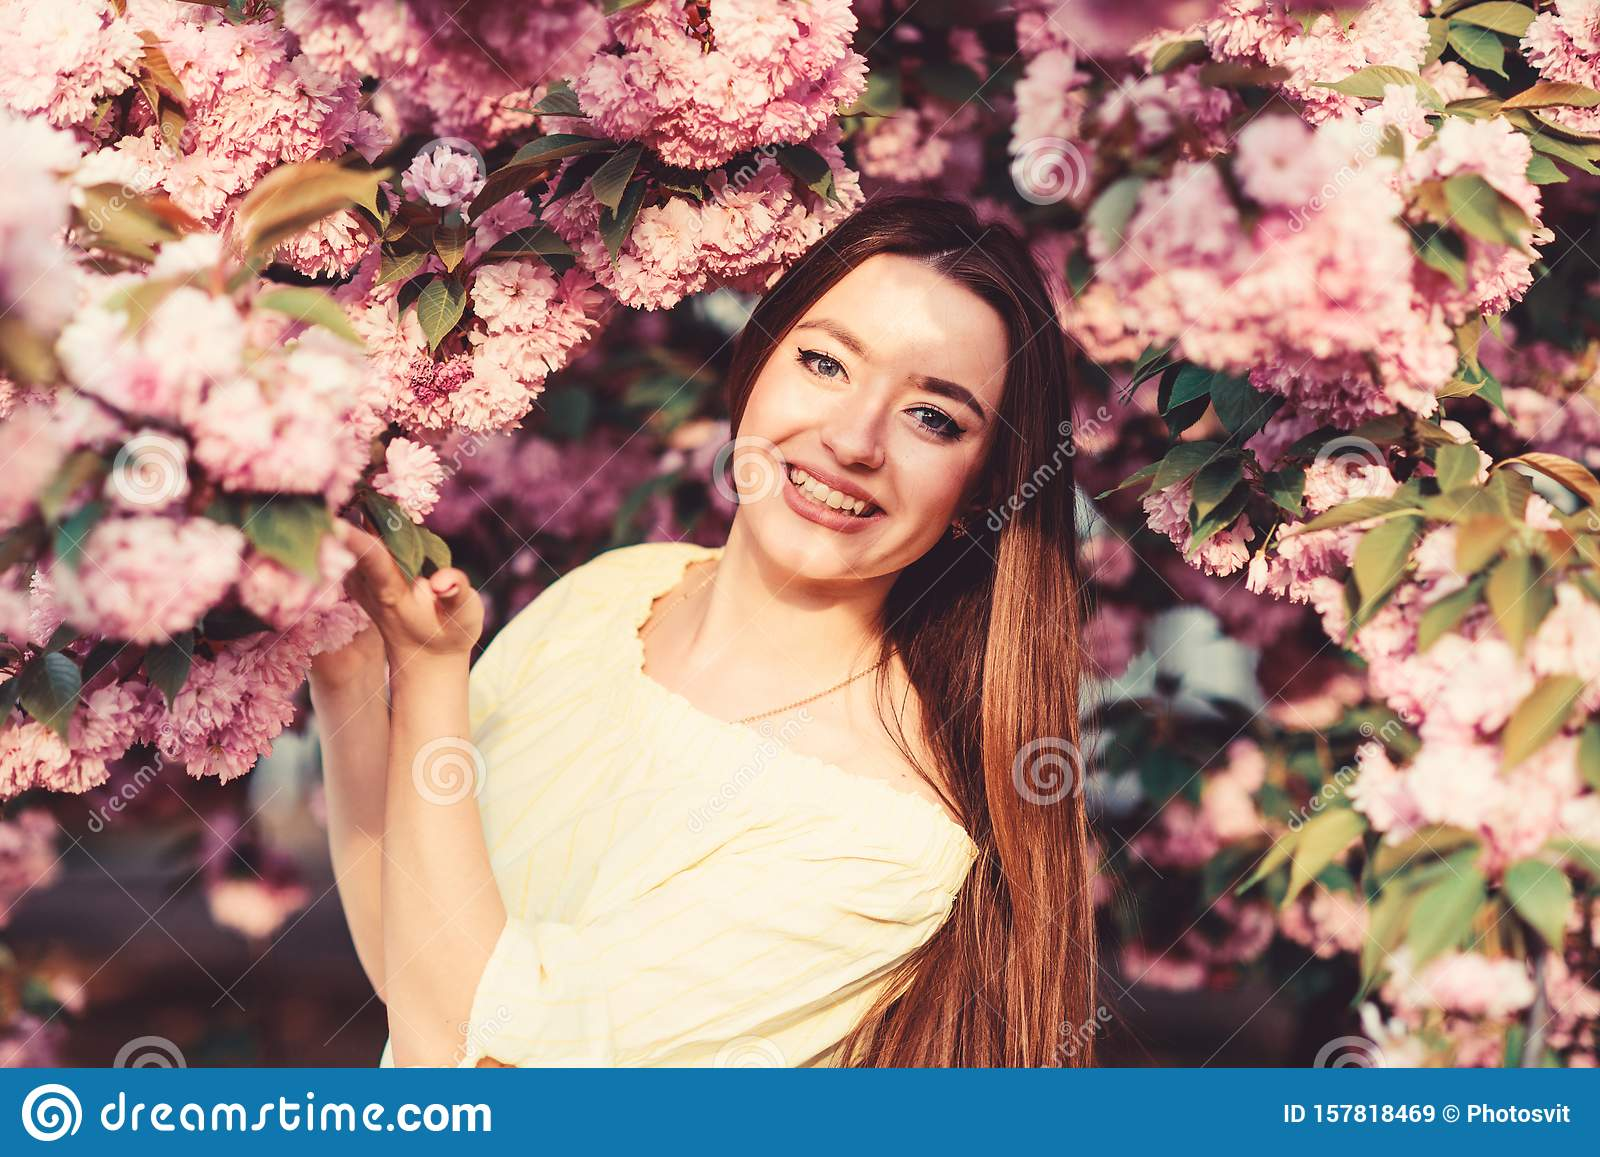 Natural summer beauty. skincare and spa. Natural cosmetics for skin. woman in spring flower bloom. blossom smell